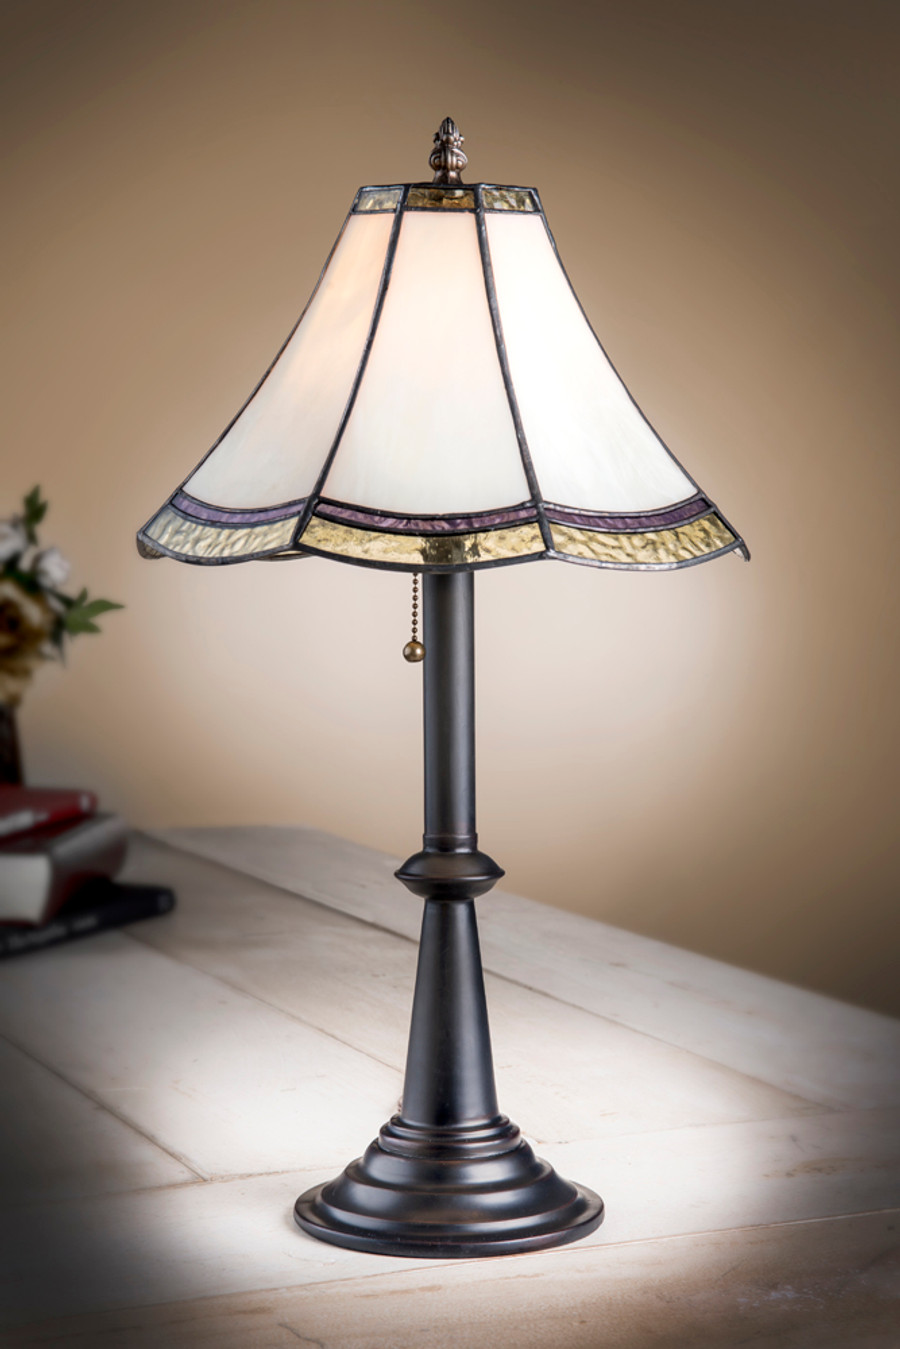 J. Devlin Lam 597-4 TB glass table lamp.